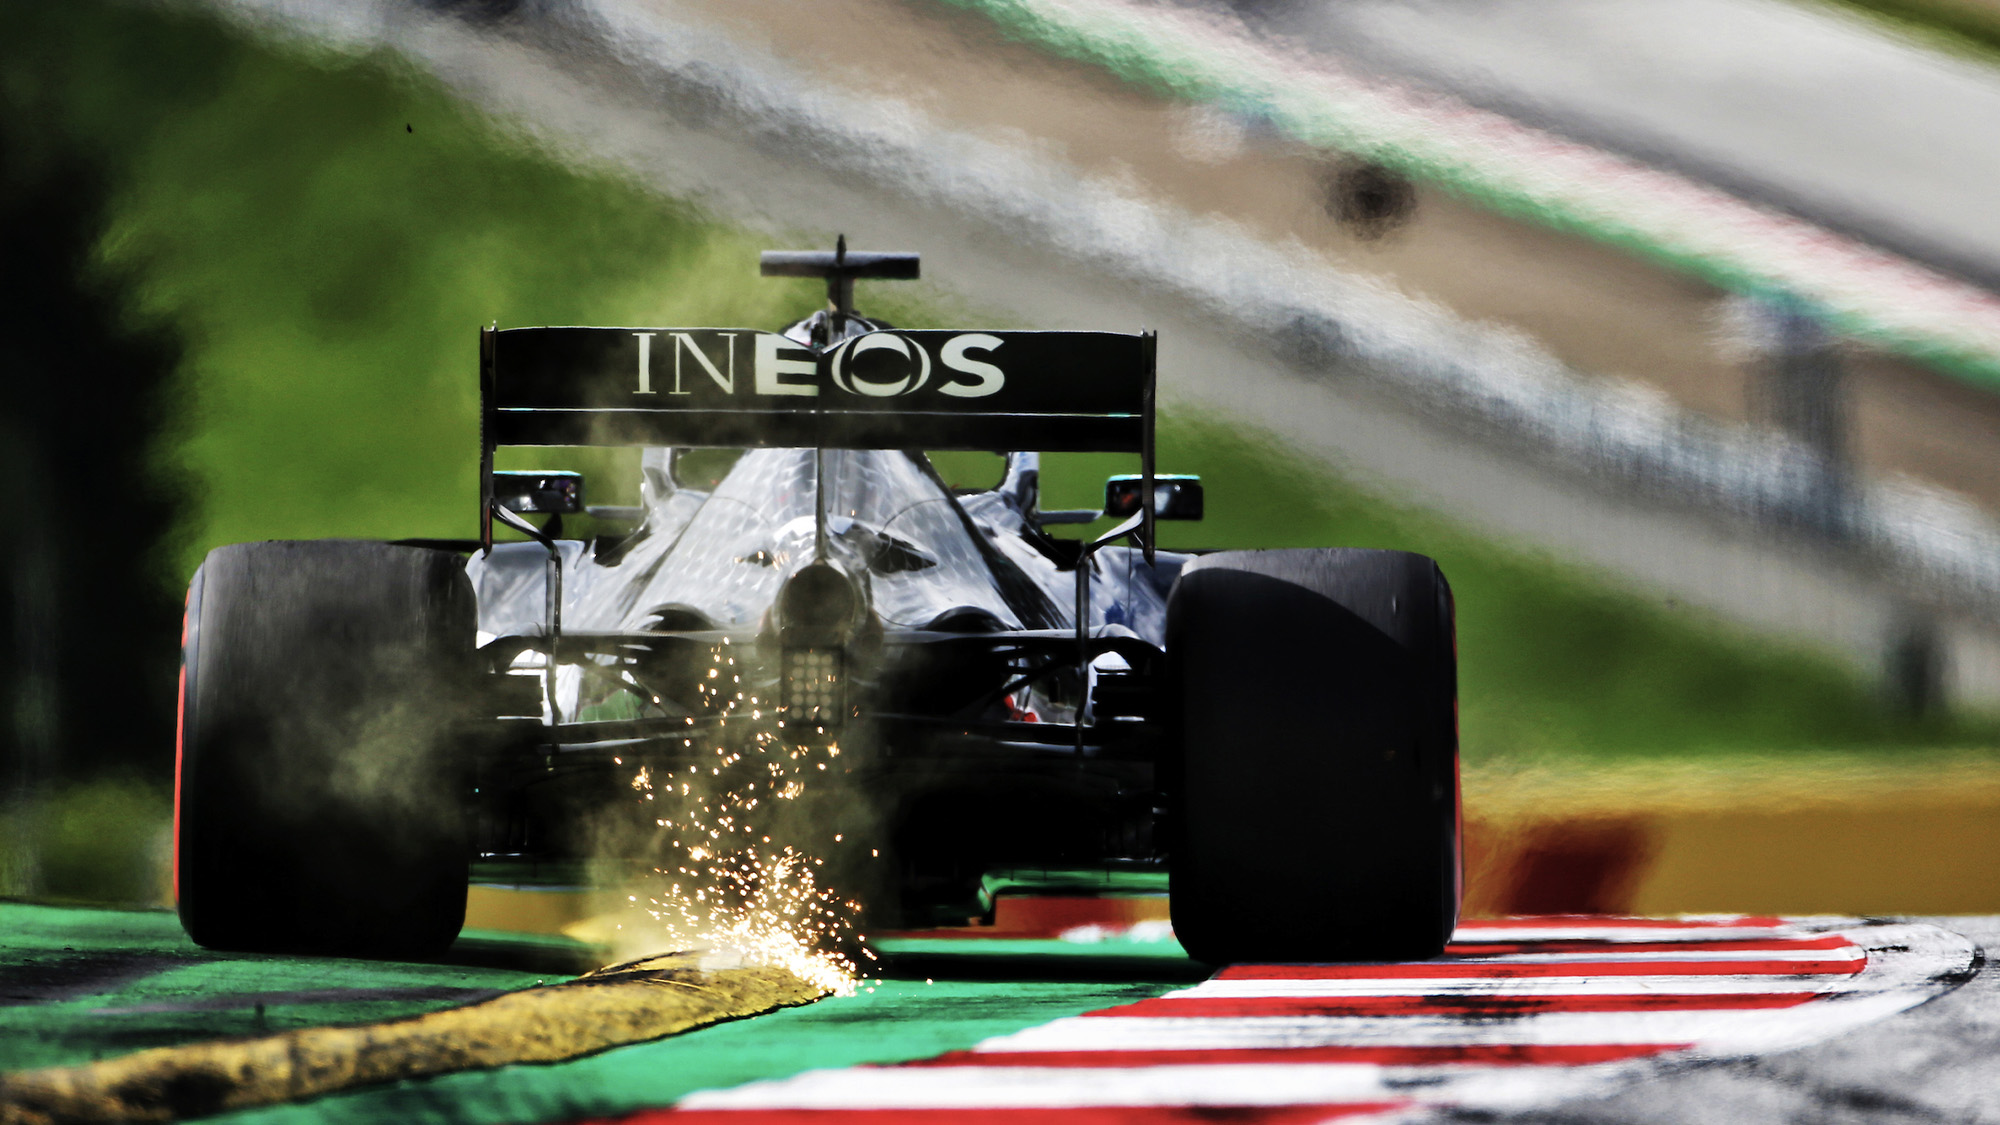 Sparks fly as Lewis Hamilton drives over a yellow kerb ahead of the 2020 F1 Austrian Grand Prix